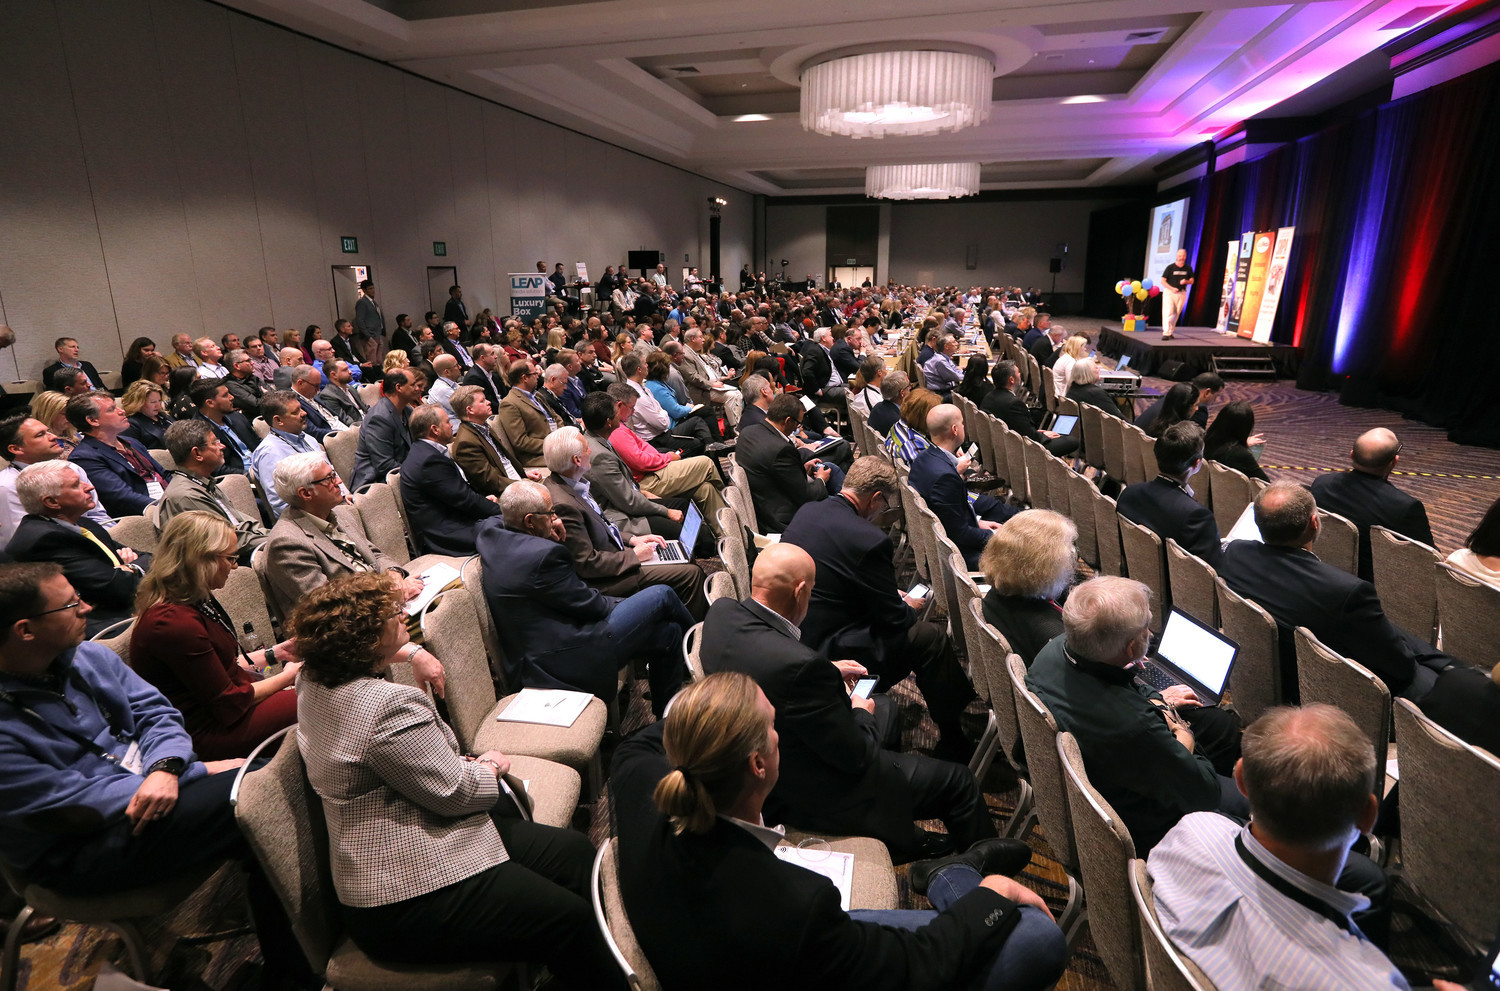 Media industry executives filled the big conference halls at the Manchester Grand Hyatt in San Diego.